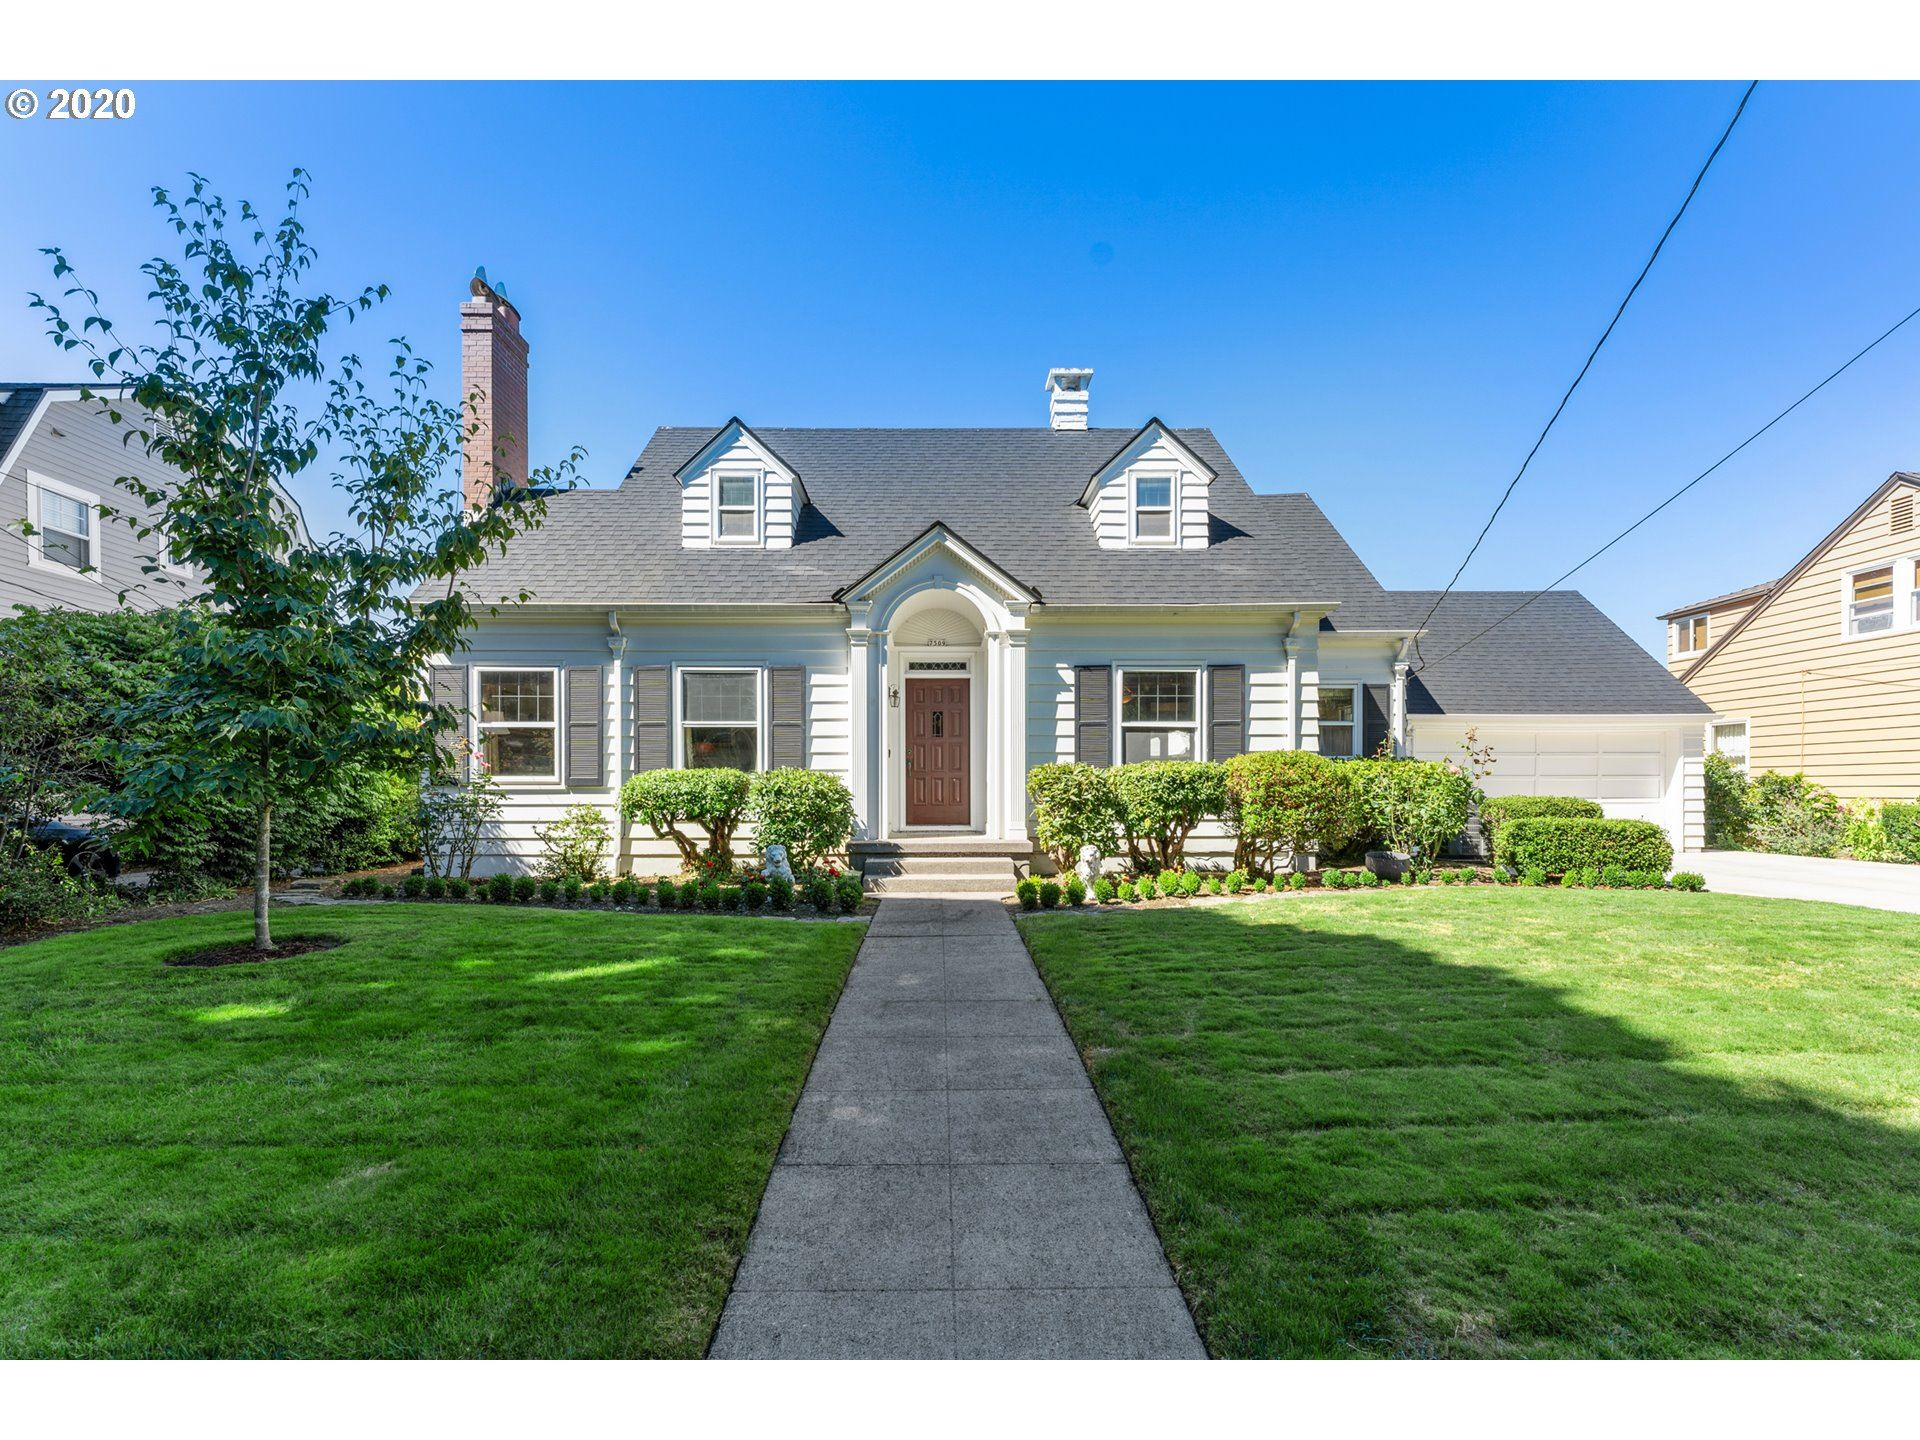 7509 SE 30TH AVE, Portland, OR 97202 - MLS#: 20380151